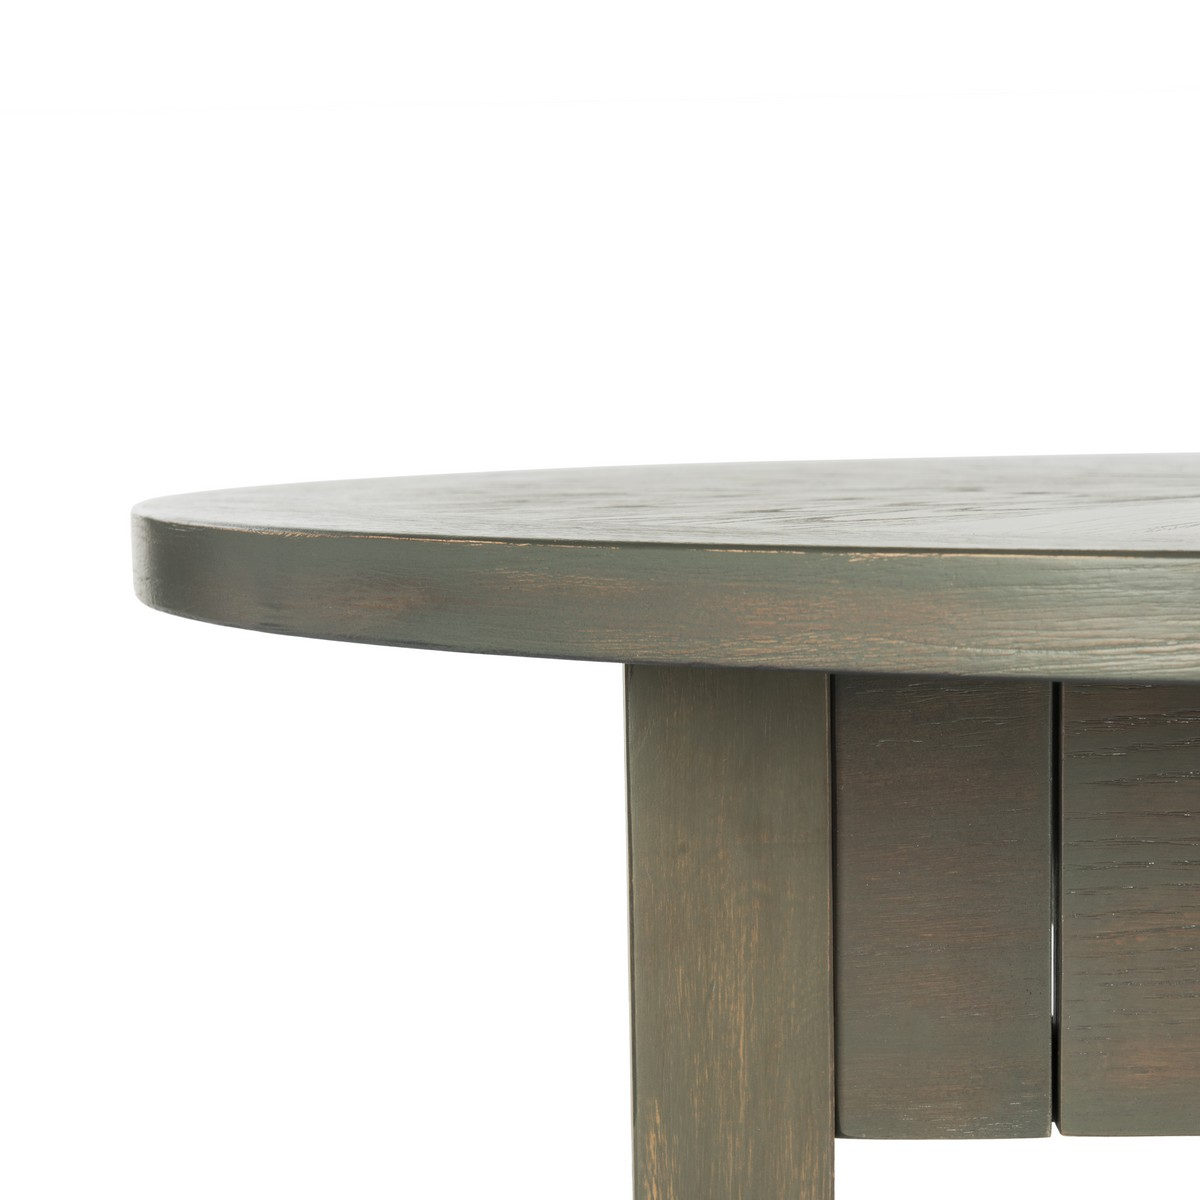 Fox6307a coffee tables furniture by safavieh bring warm contemporary style to any living room with this welcoming round coffee table finely crafted with wood in a soothing ash grey finish geotapseo Images